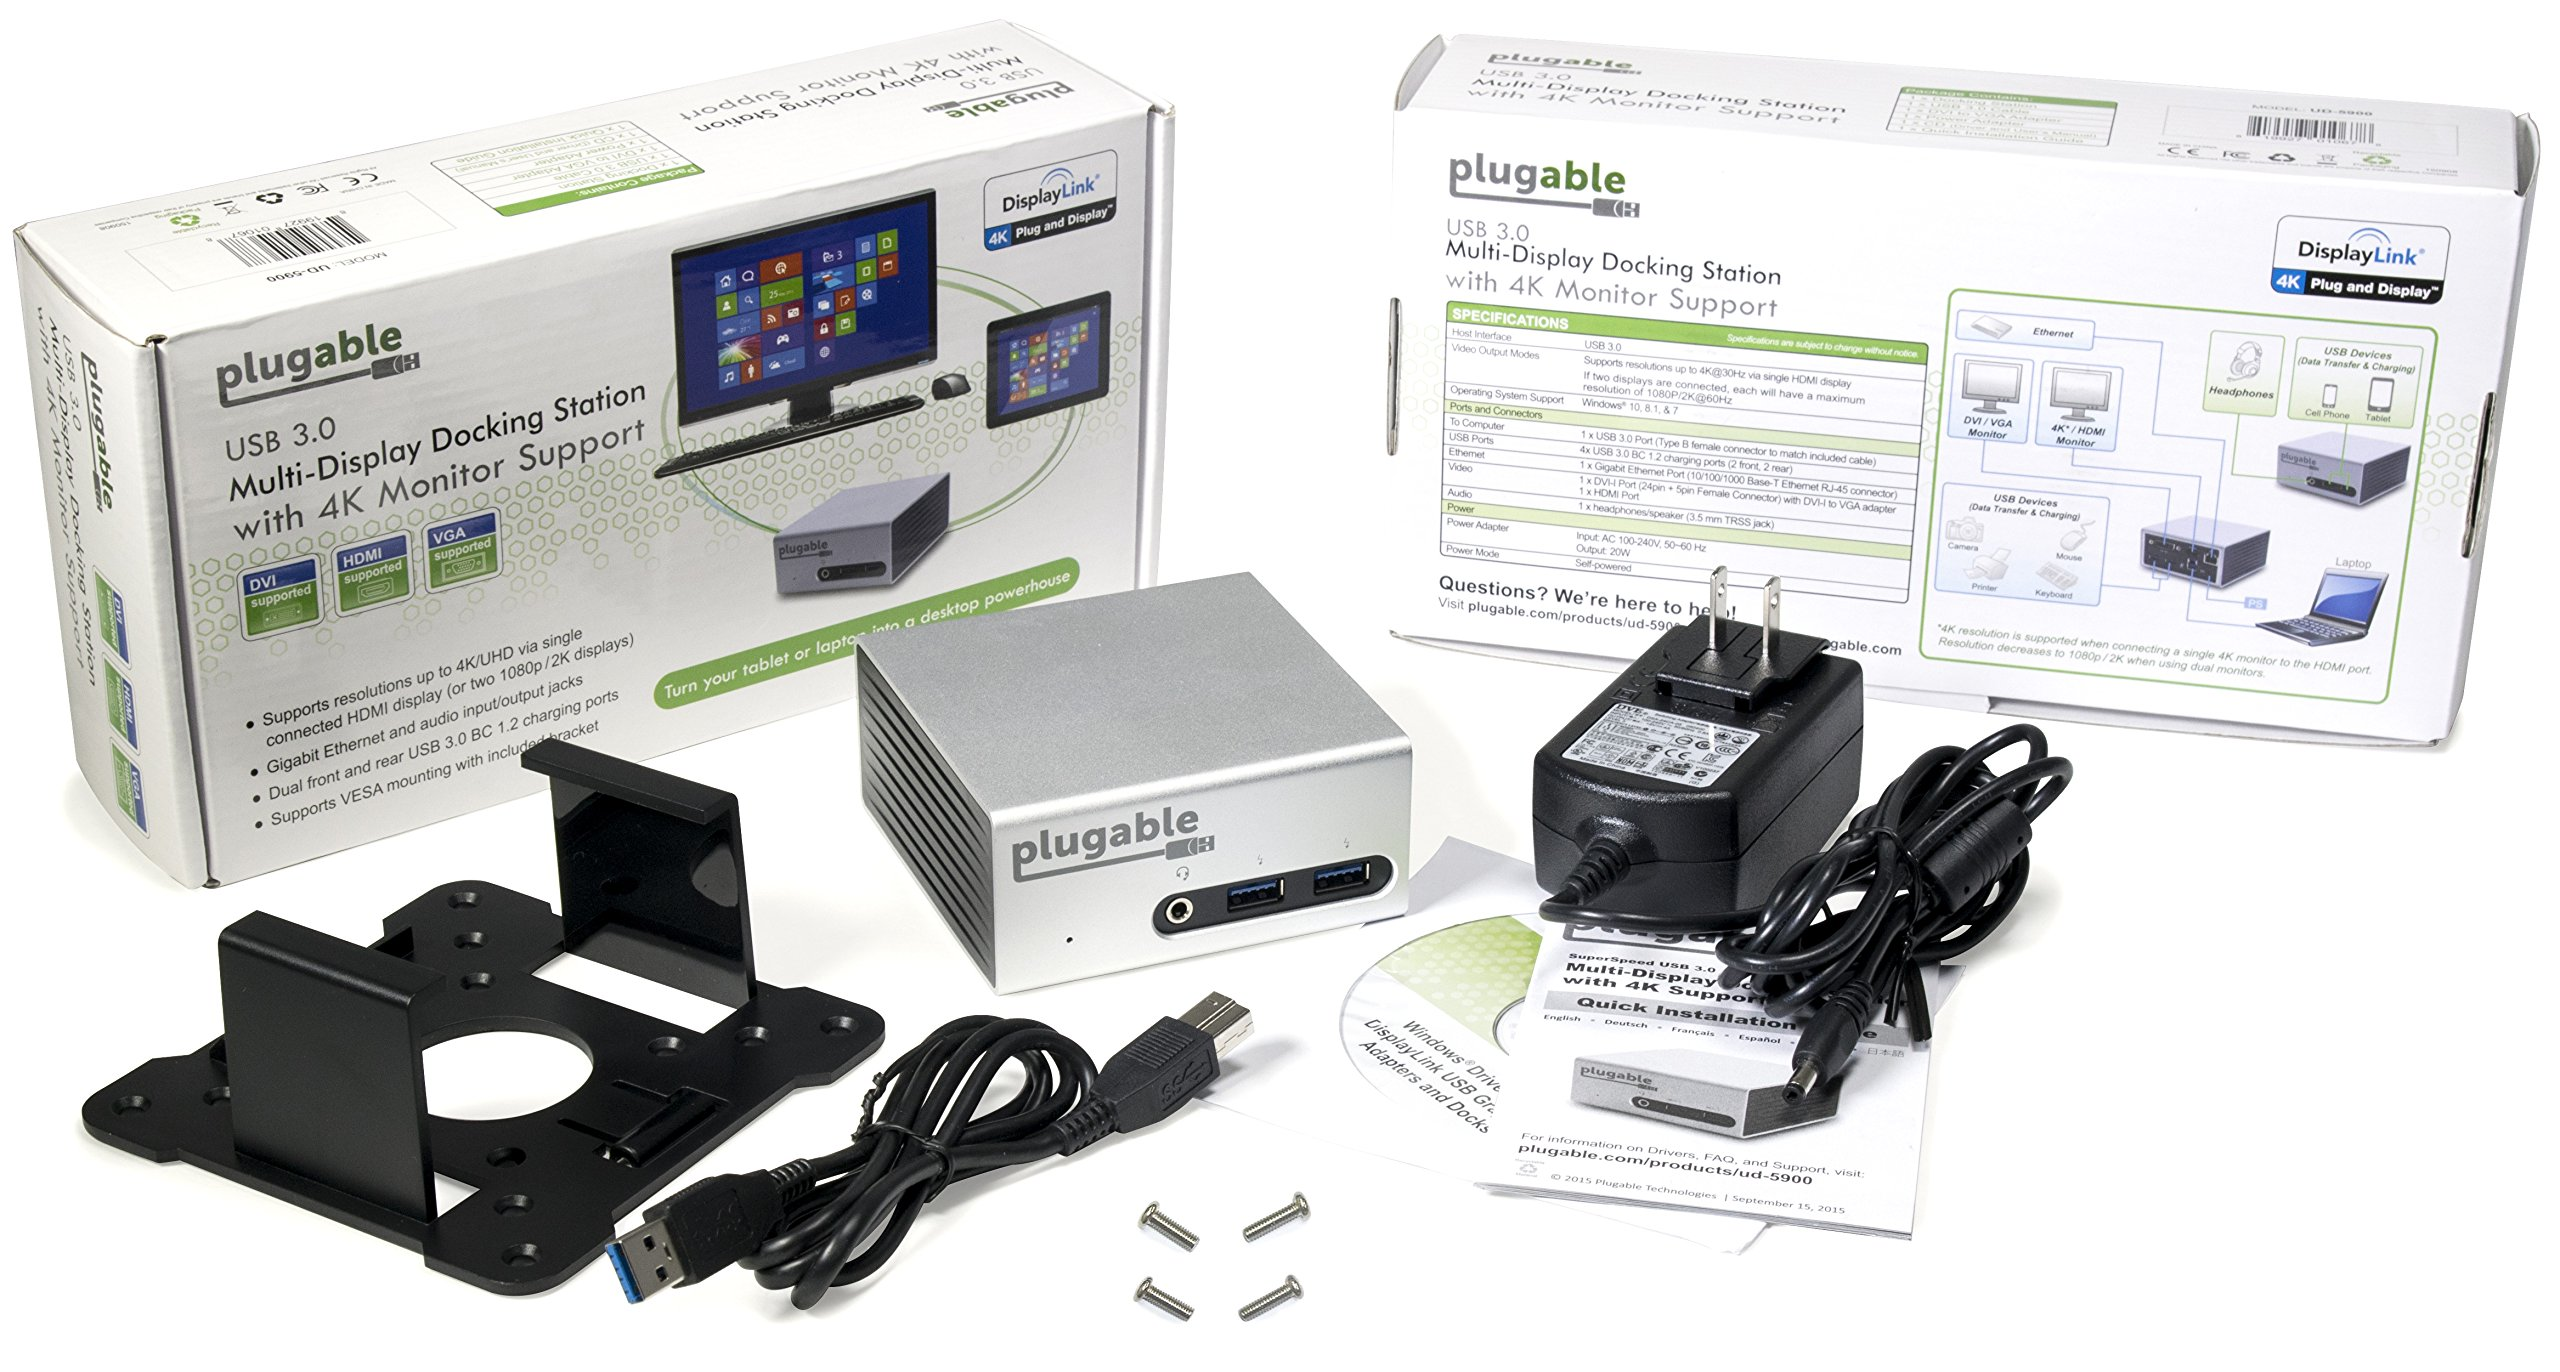 Plugable Universal USB 3.0 Docking Station with Dual Video Outputs and 4K Support for Windows 10, 8.1, 7 (HDMI & DVI/VGA, Gigabit Ethernet, Audio, 4 USB 3.0 Ports, VESA mount Aluminum Mini) by Plugable (Image #5)